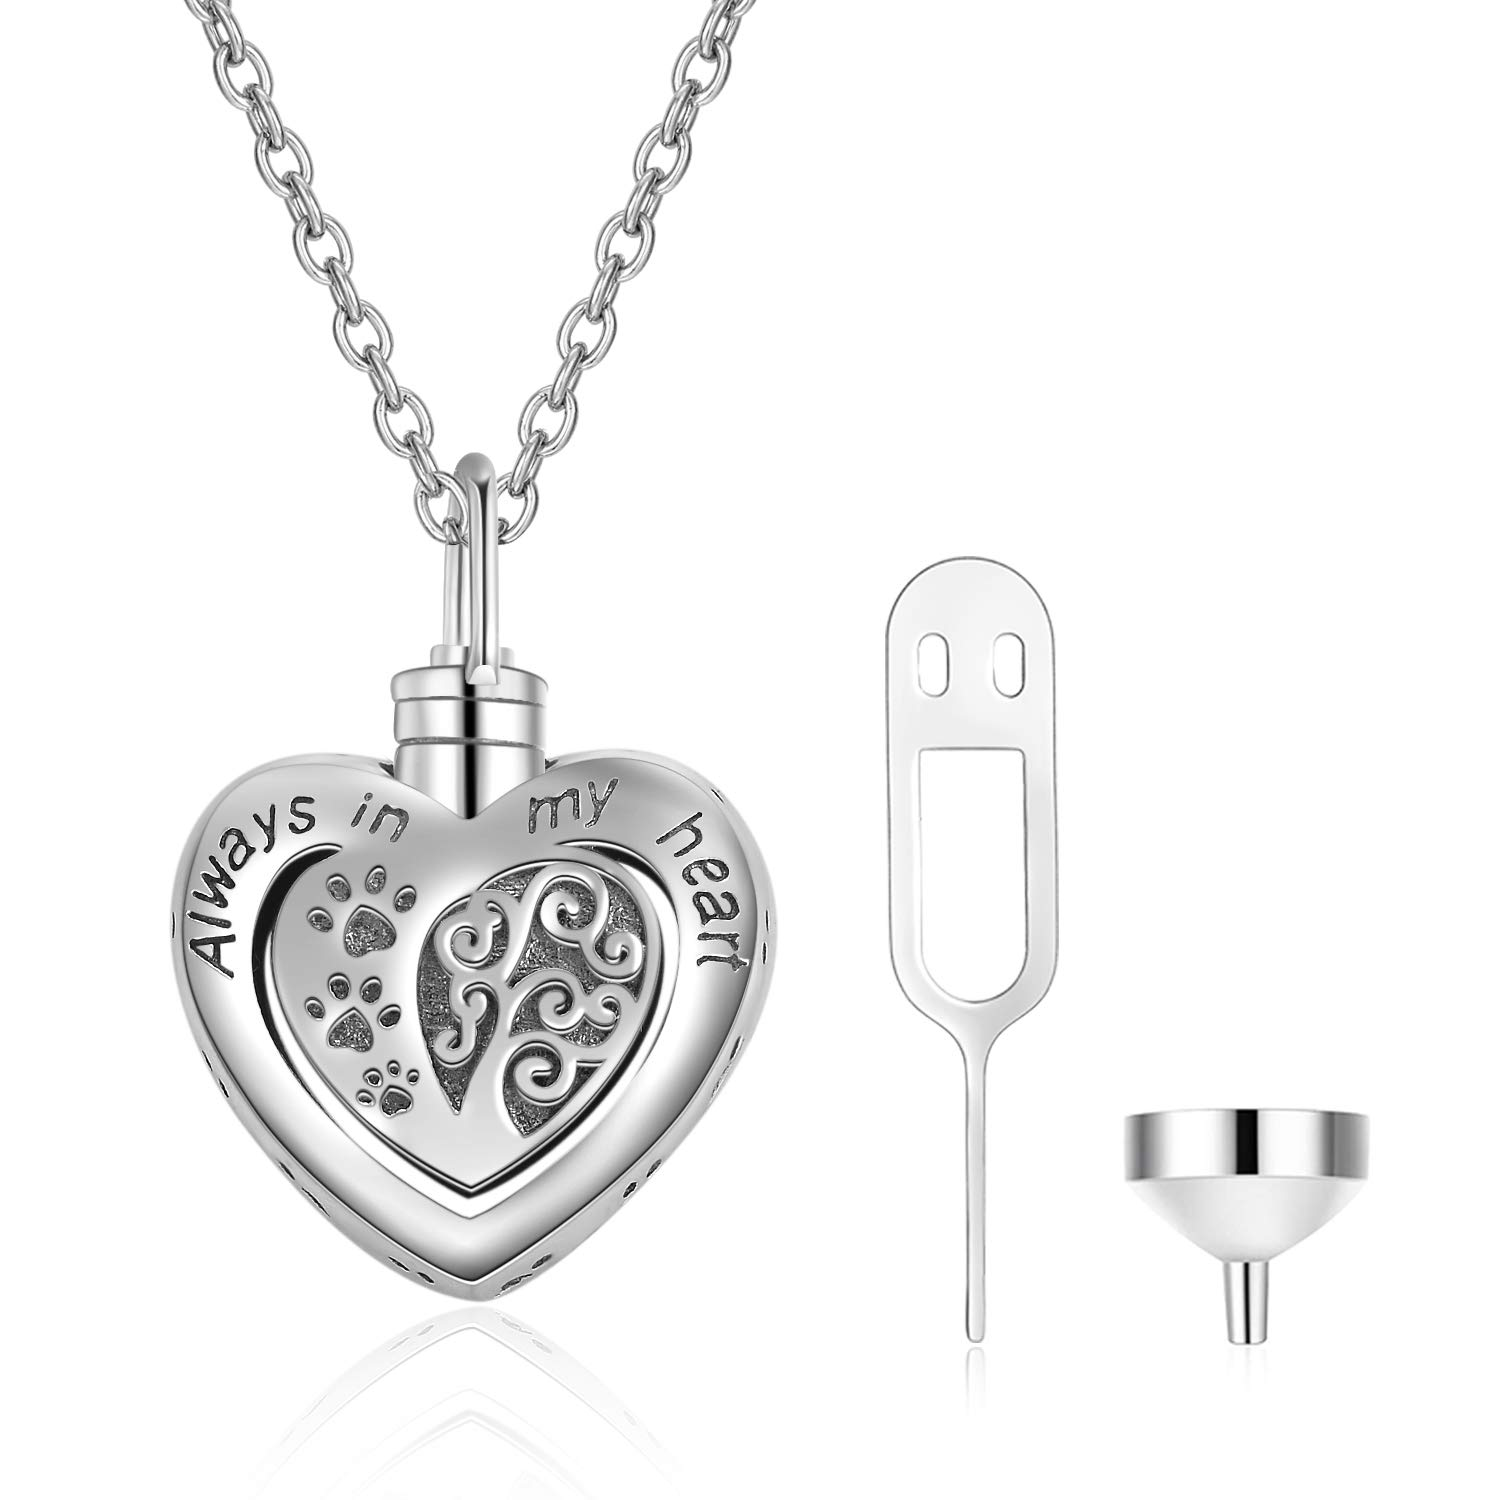 5a2b6212b Amazon.com: POPLYKE Memorial Urn Necklace for Dog Cat Pets Ashes, Engraved  Always in My Heart Sterling Silver Dog Paw Pendant Necklace for Women Girls  ...